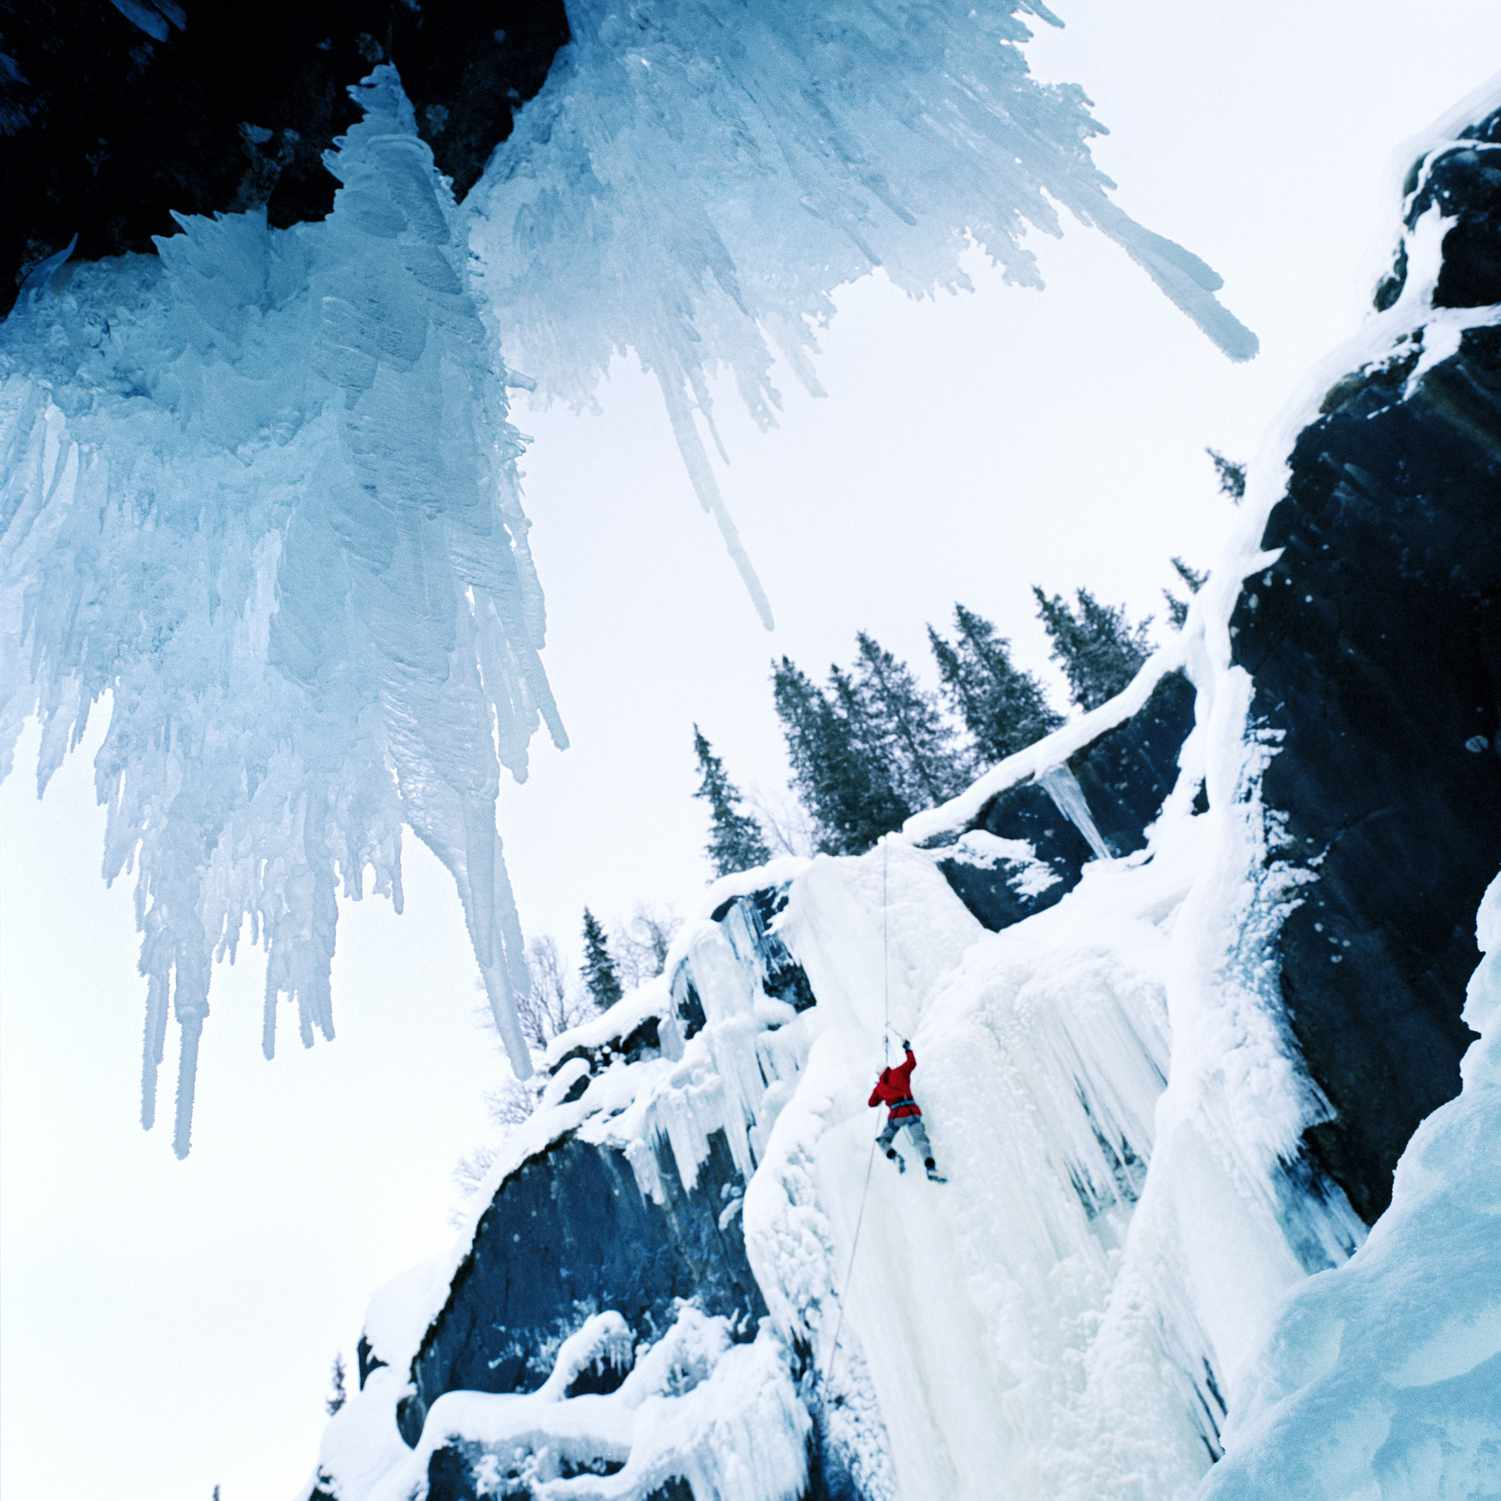 Ice climber on a frozen waterfall in Norway